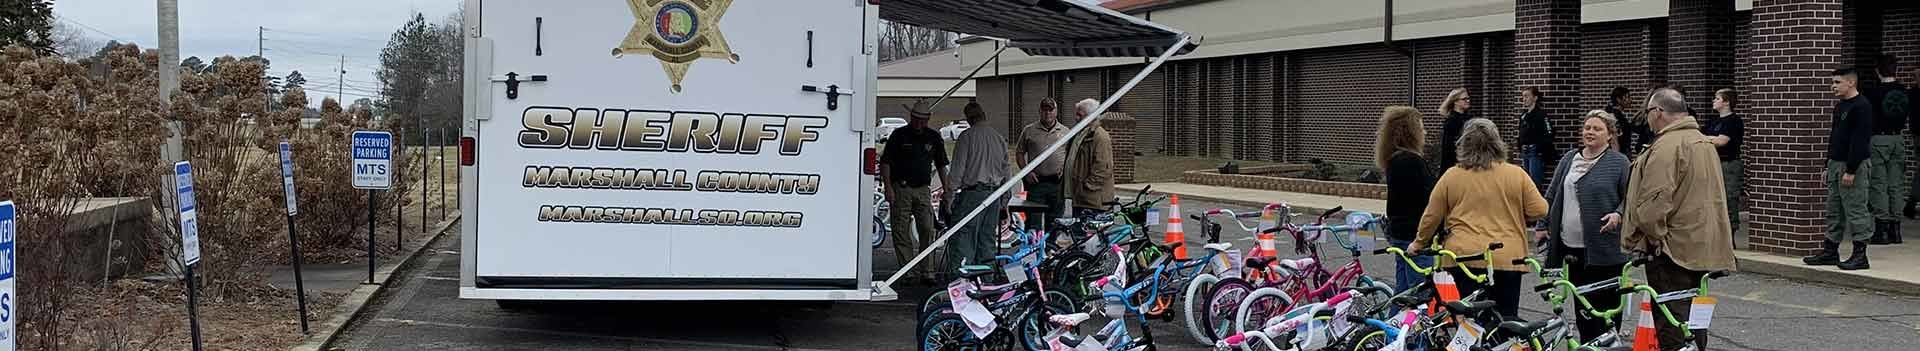 Sheriff Office Giving out Bikes to Kids